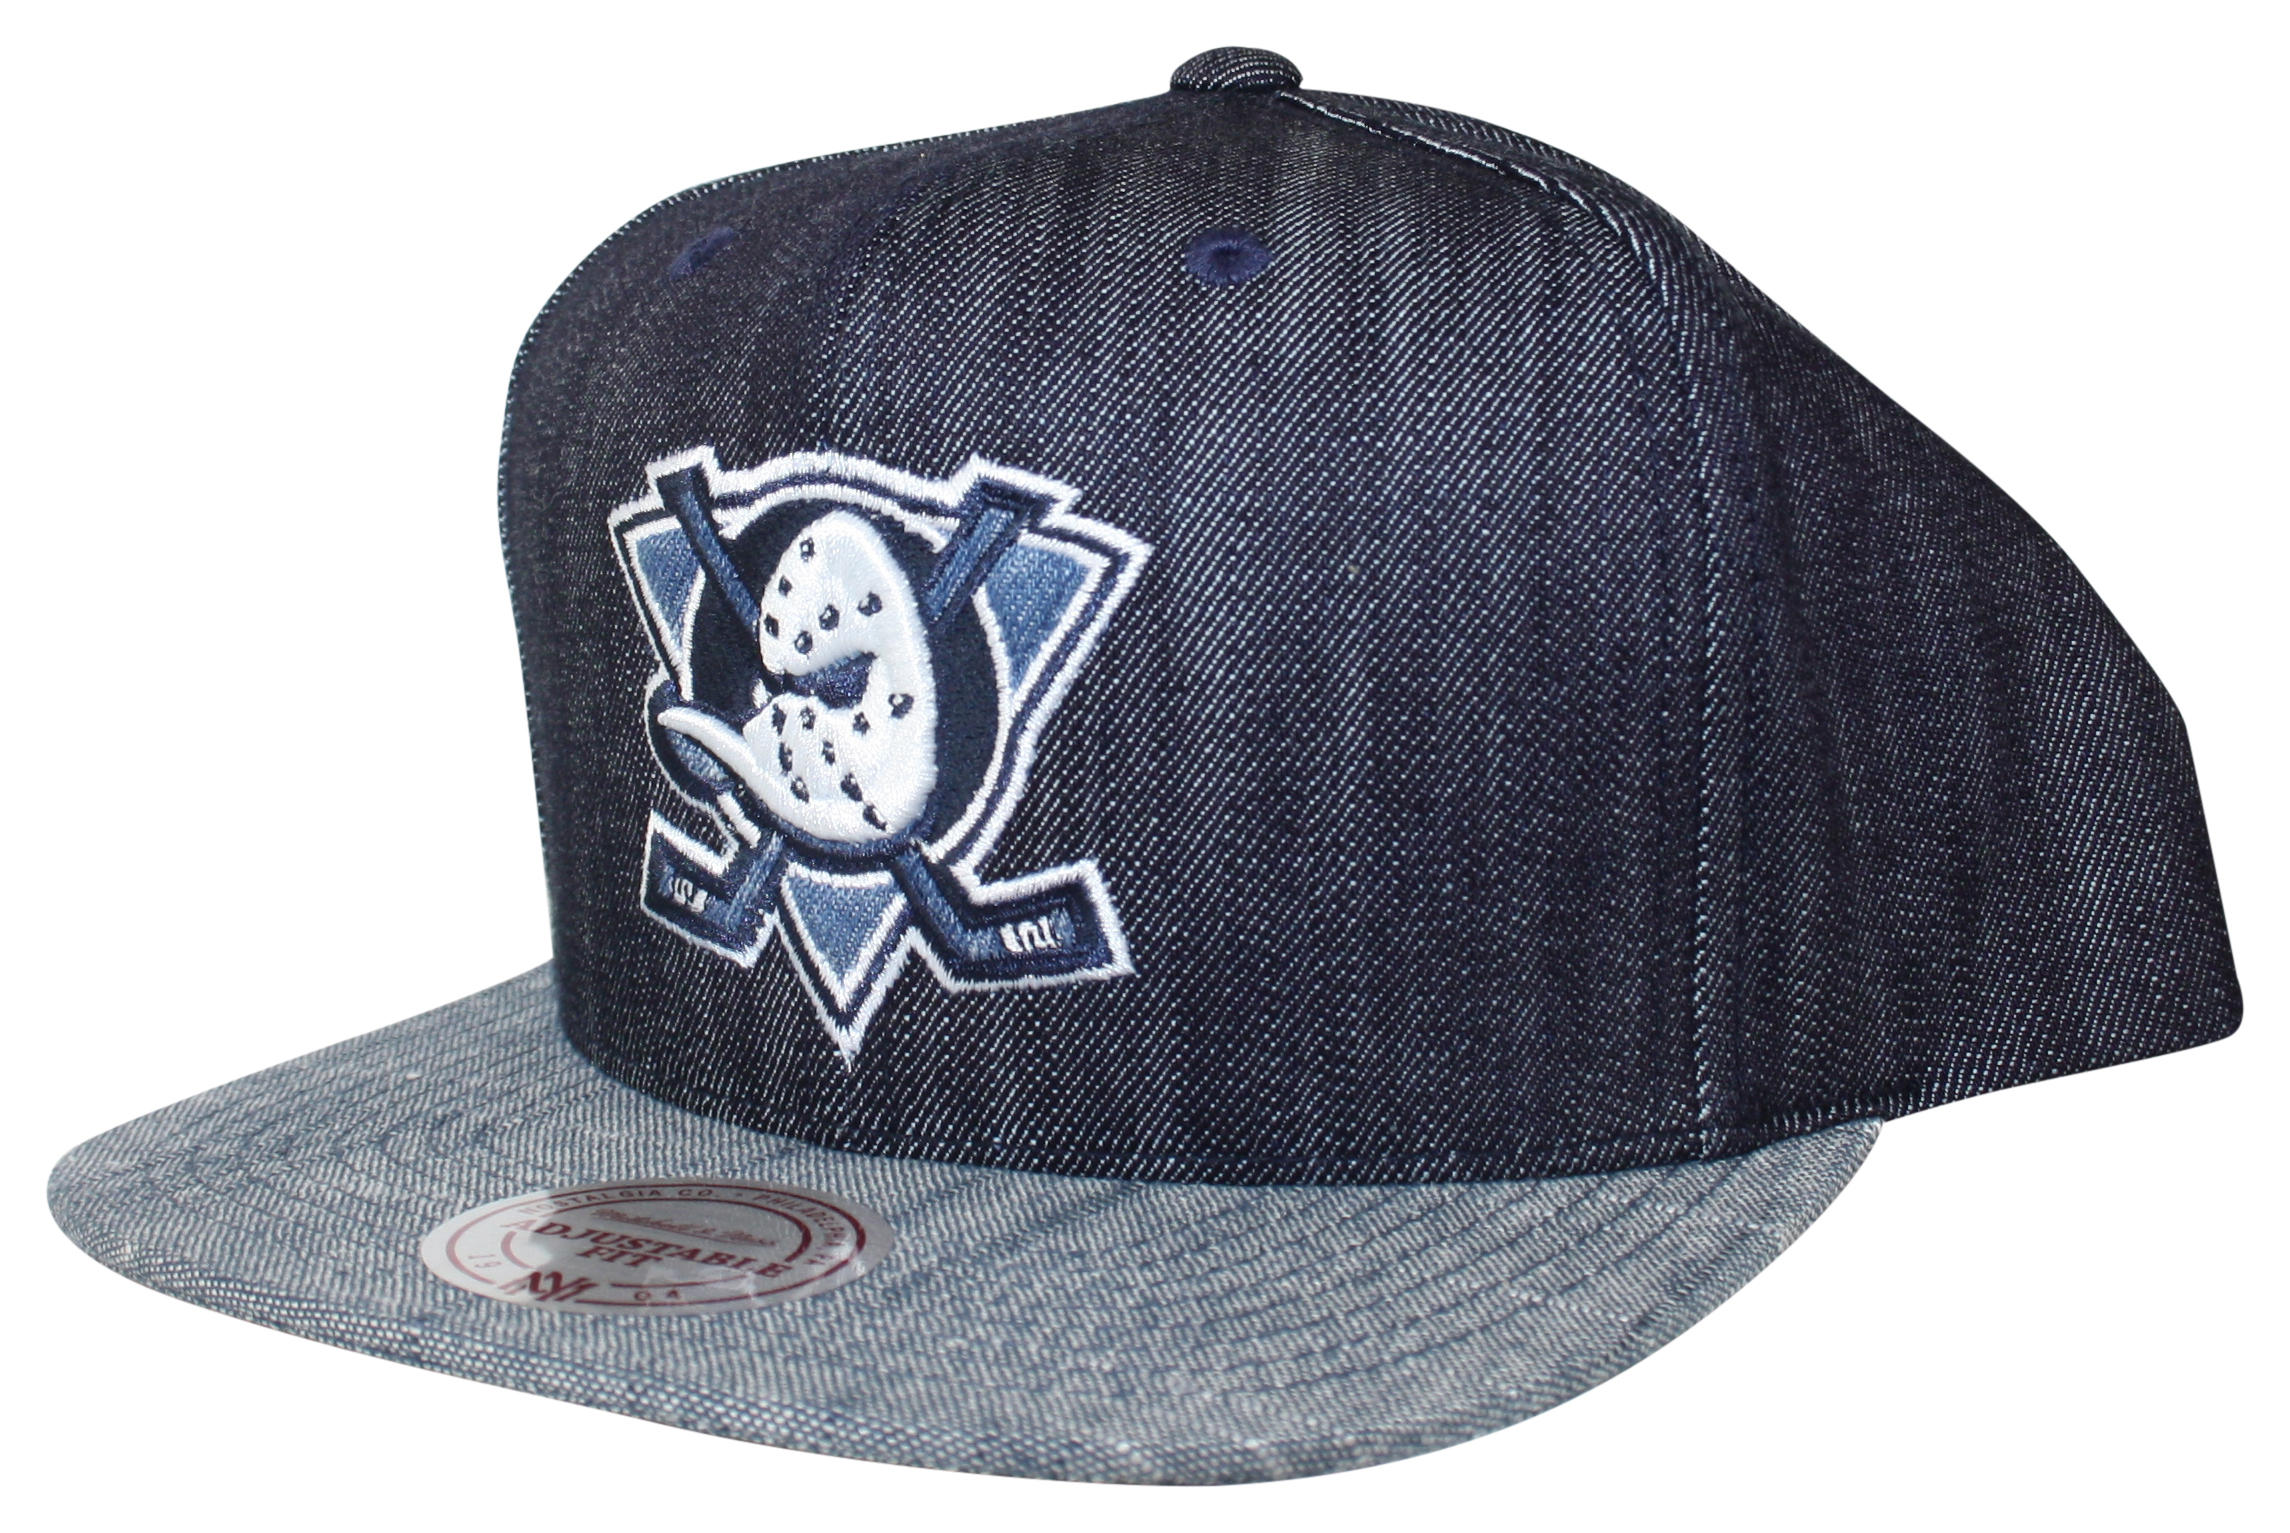 acf96b0cc8539 Blue Linen Snapback Mighty Ducks of Anaheim